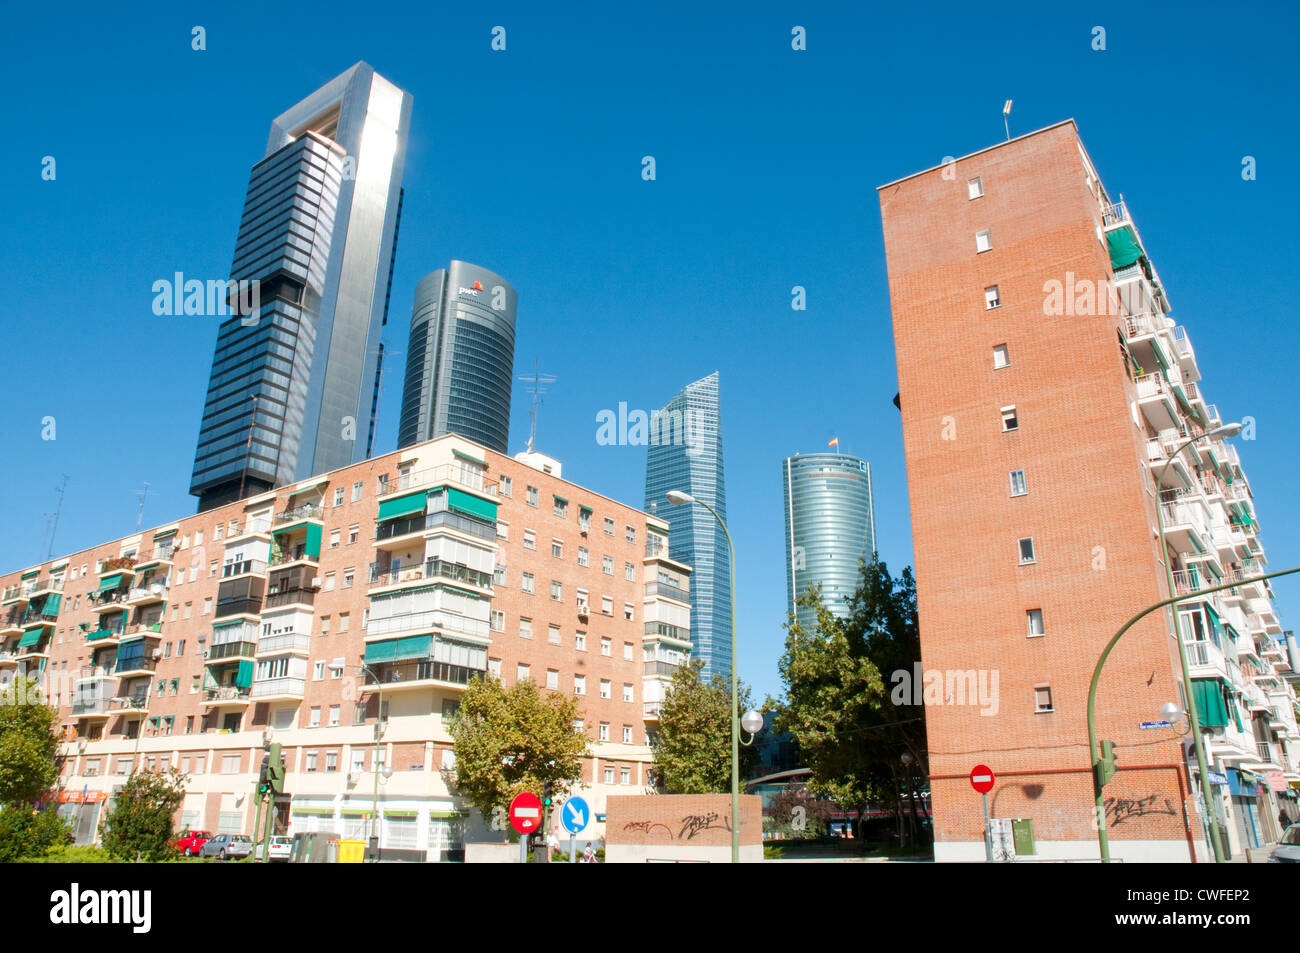 Houses and Cuatro Torres Business Area. Madrid, Spain. - Stock Image